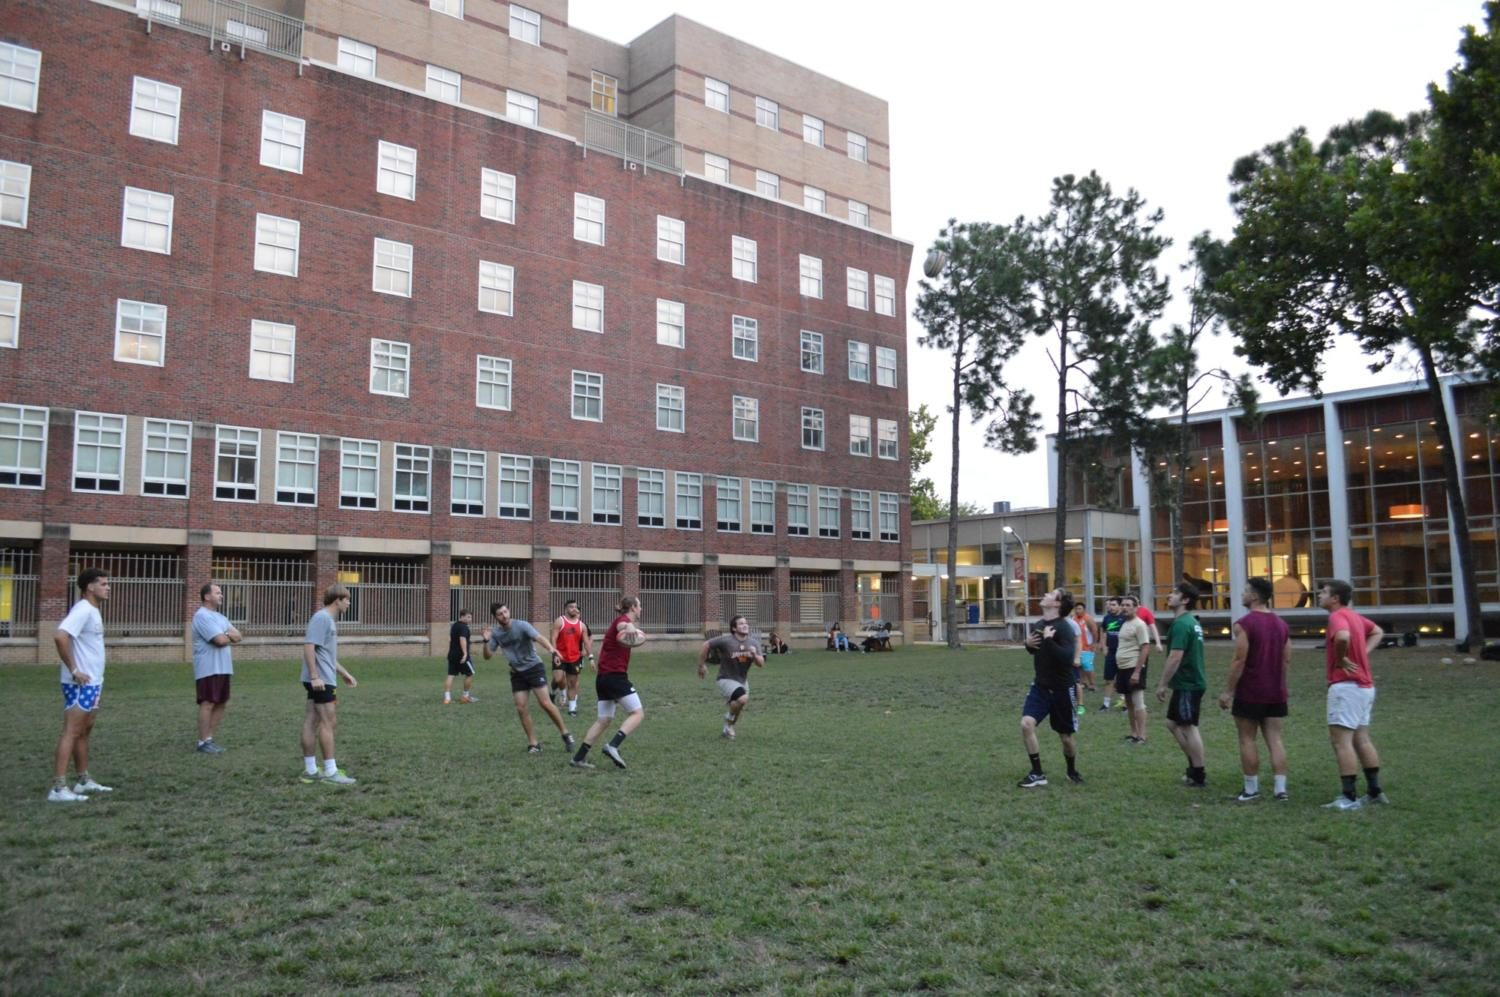 The+rugby+team+practice+in+the+Residential+Quad+on+Wednesday%2C+Sept.+6.+The+team+is+preparing+for+the+start+of+the+season+with+a+new+group+of+freshmen+on+the+team.+Photo+credit%3A+Paola+Amezquita